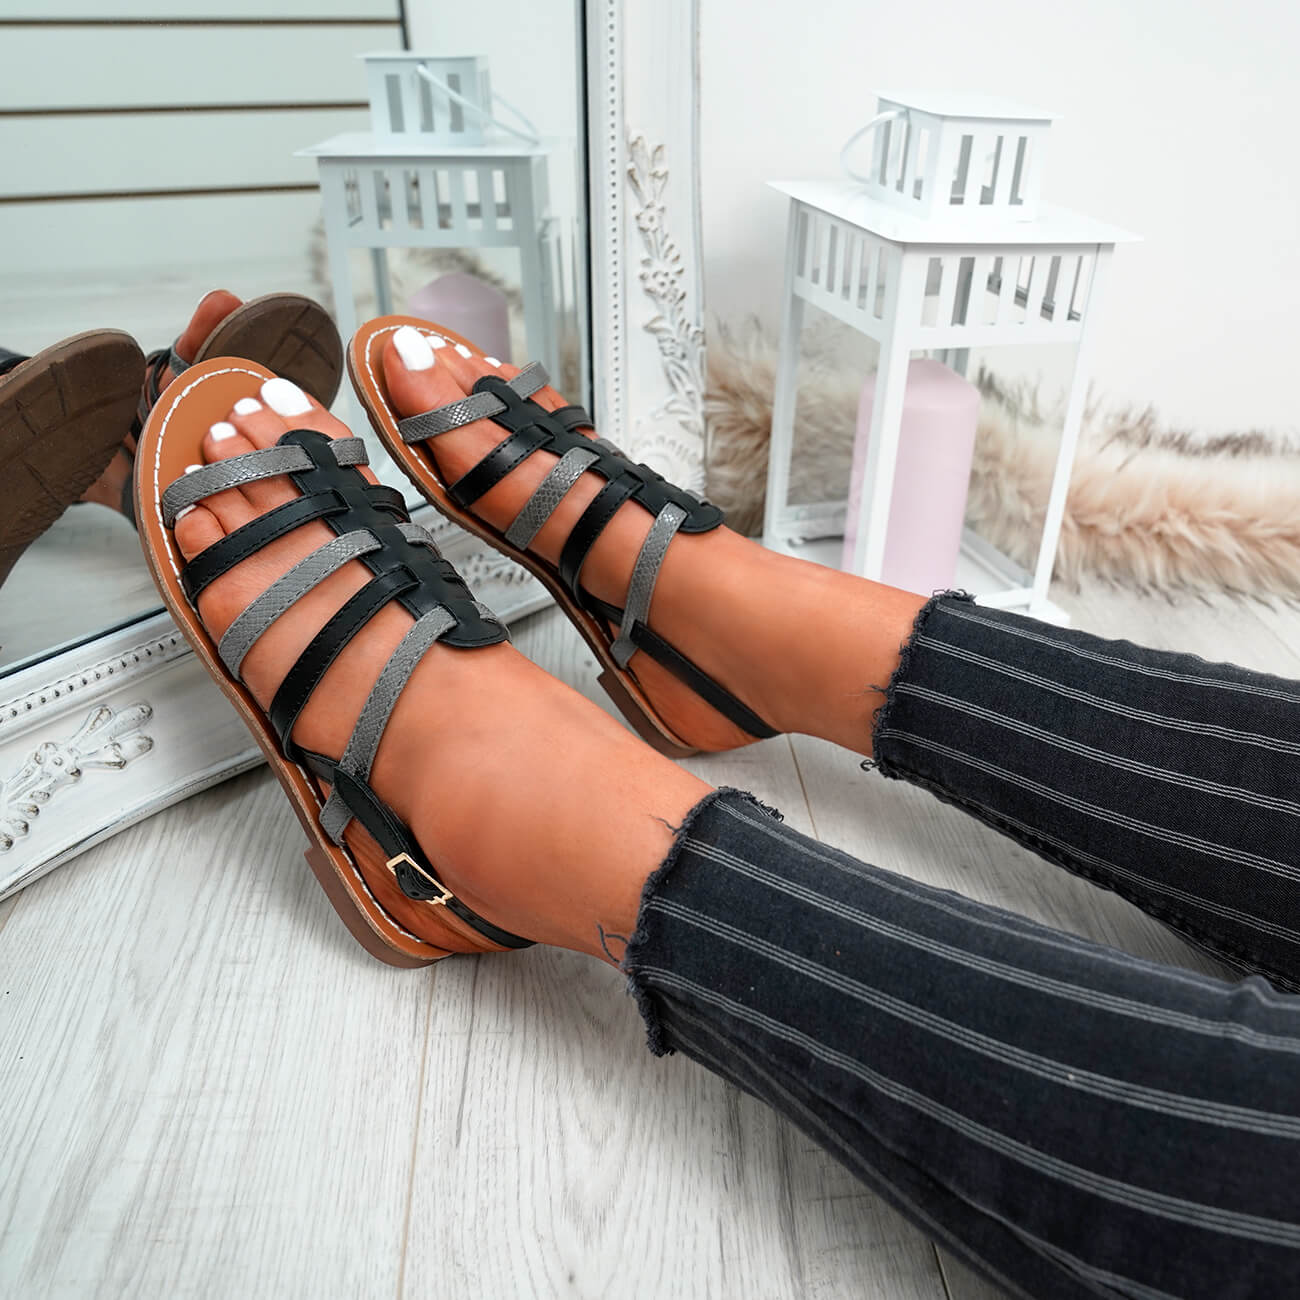 WOMENS-LADIES-BUCKLE-STRAP-FLAT-SUMMER-SANDALS-CASUAL-HOLIDAY-COMFY-SHOES-SIZE thumbnail 9